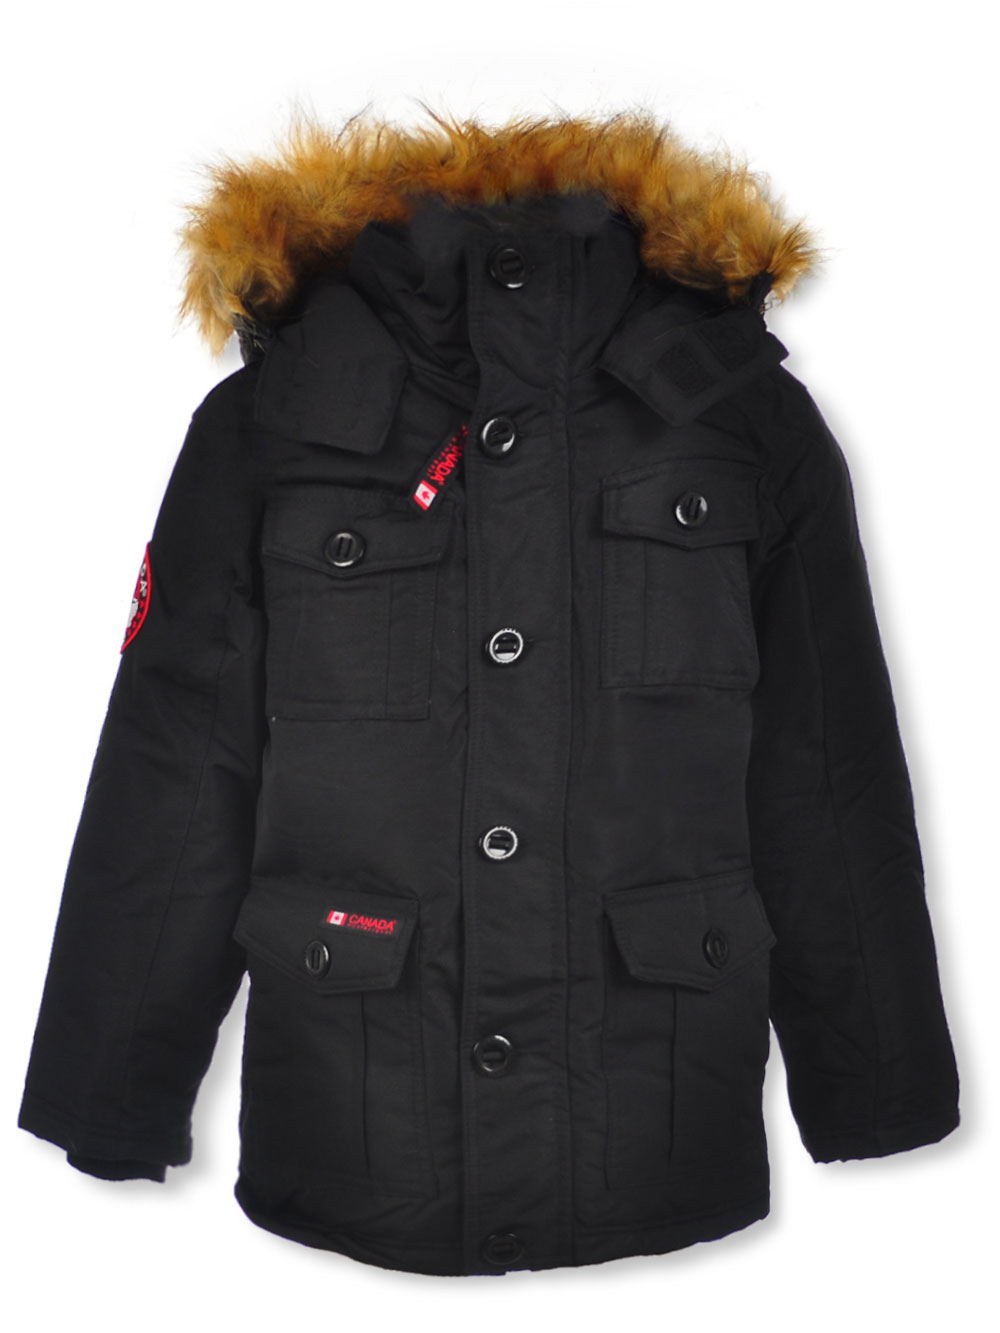 Canada Weather Gear Jackets